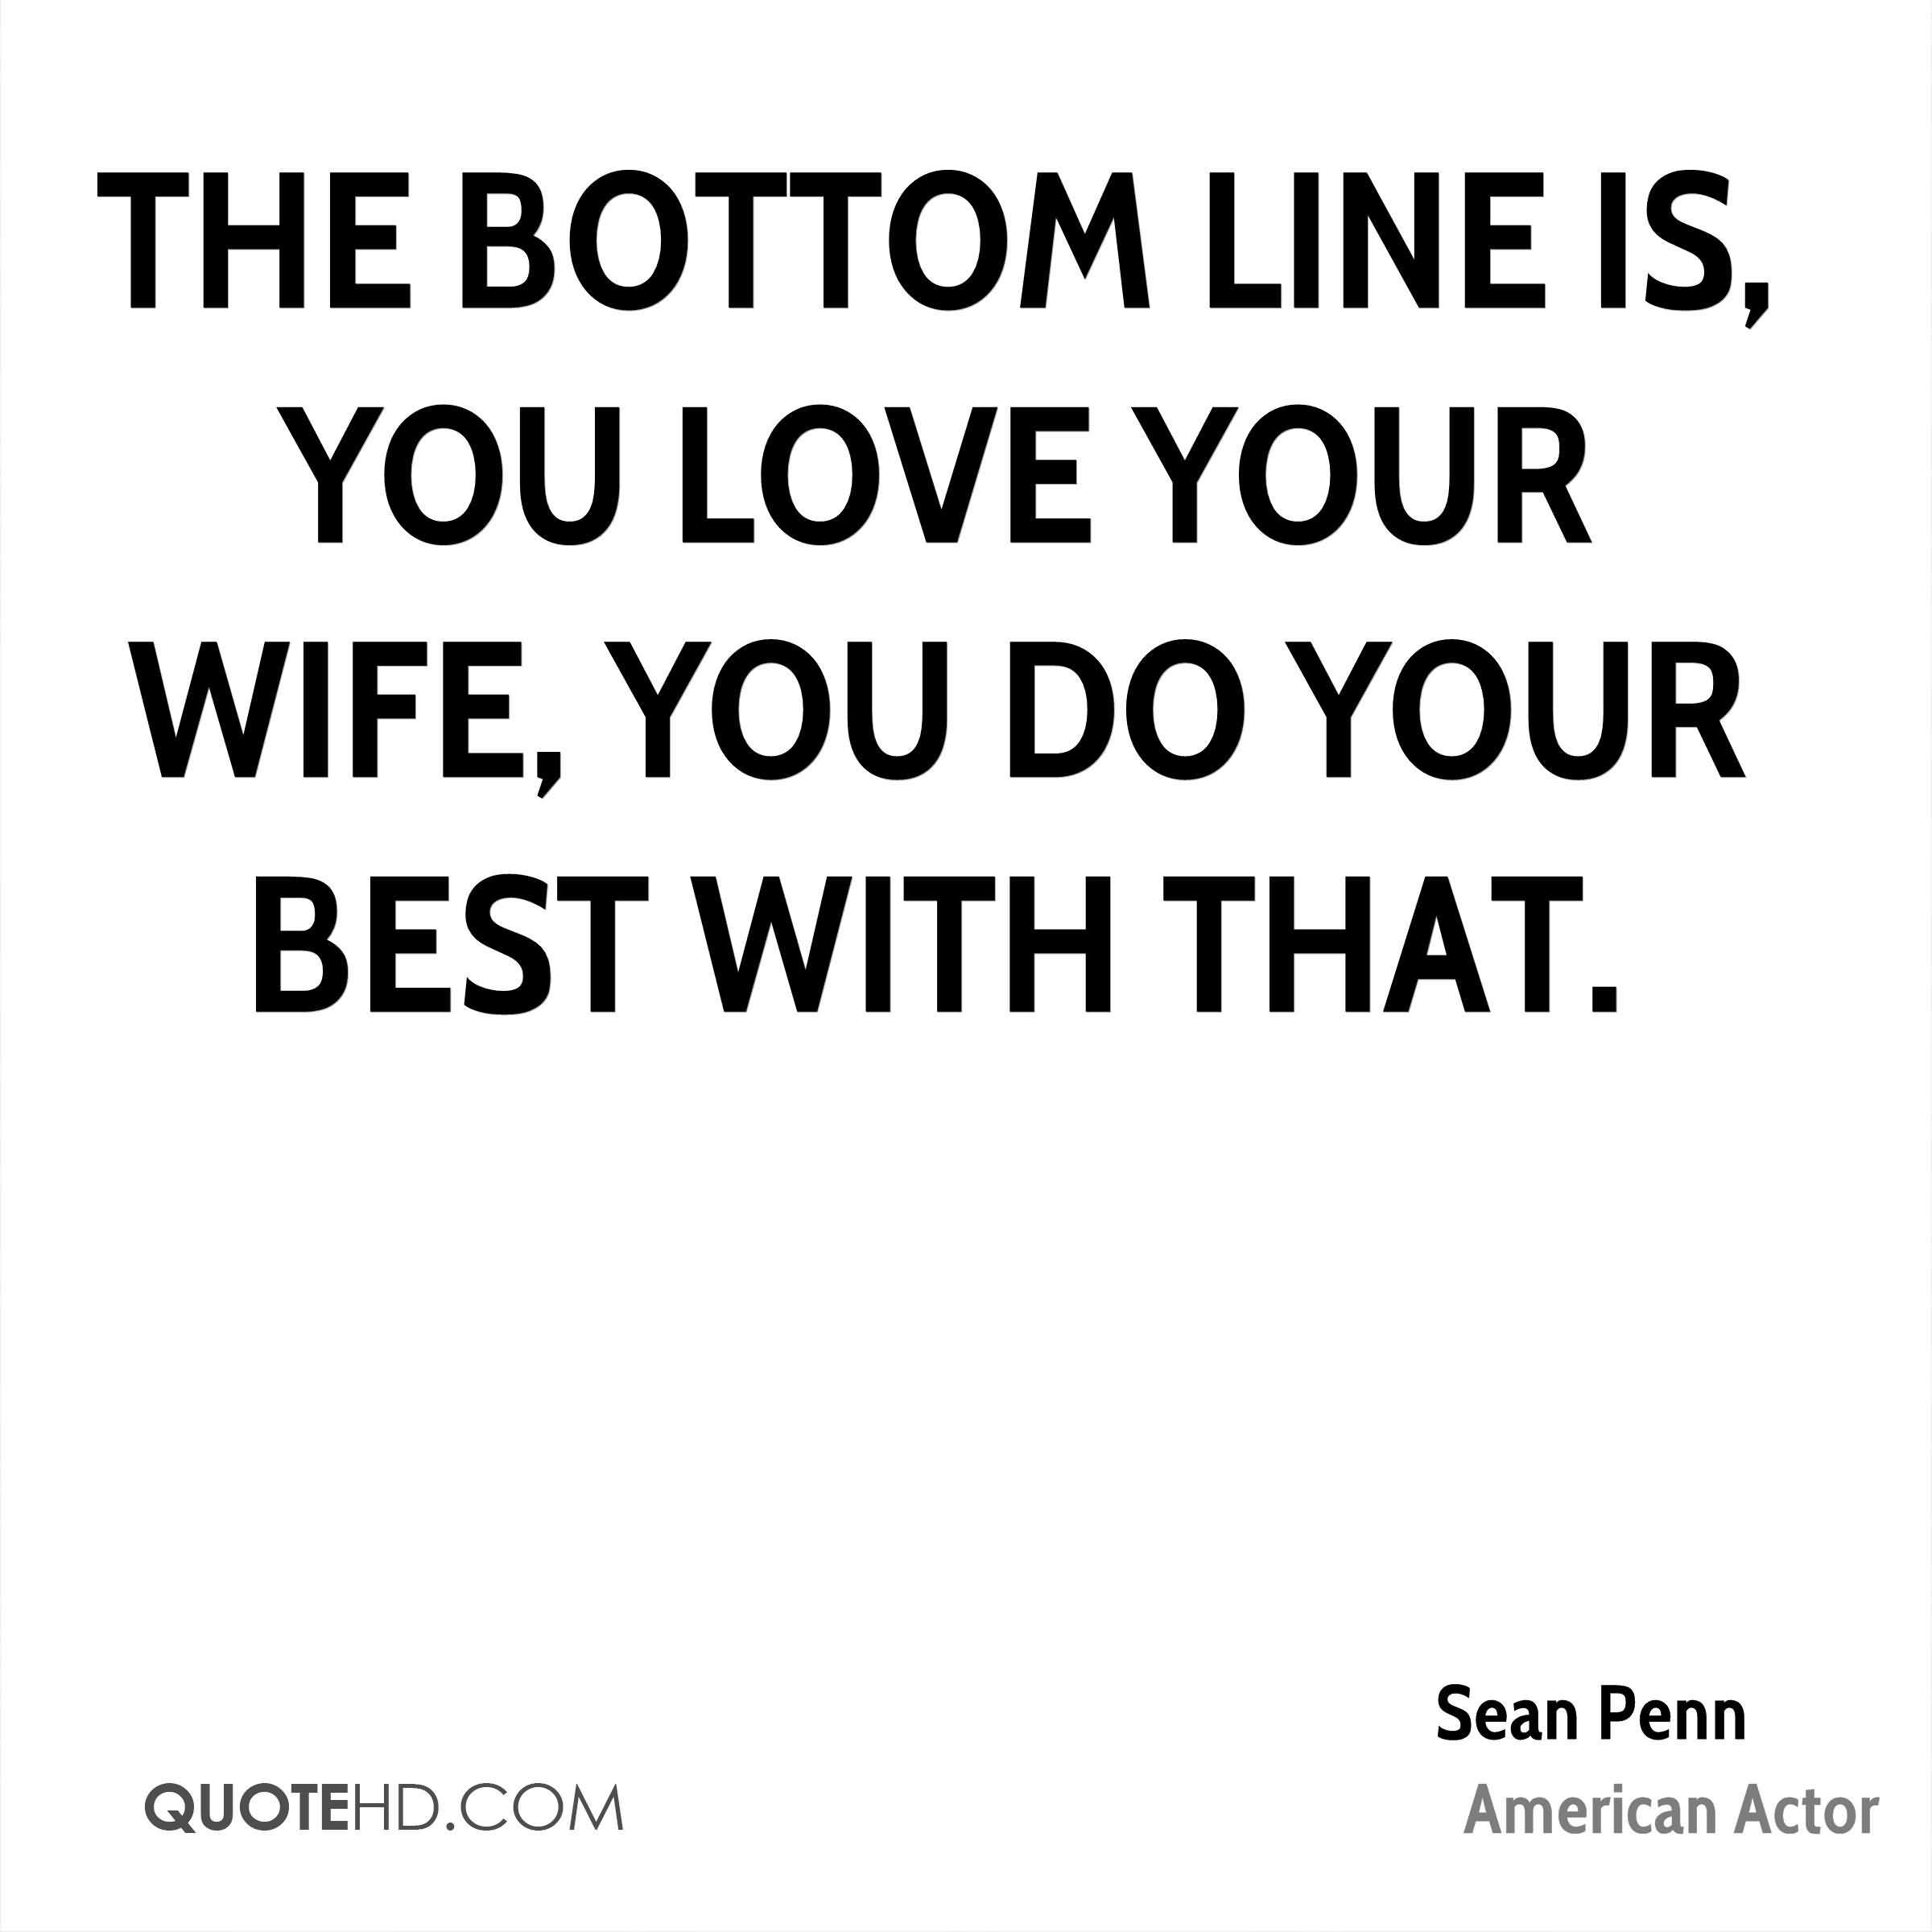 Love Quote For Your Spouse: 20 Love Quotes For Your Wife And Wifey Sayings